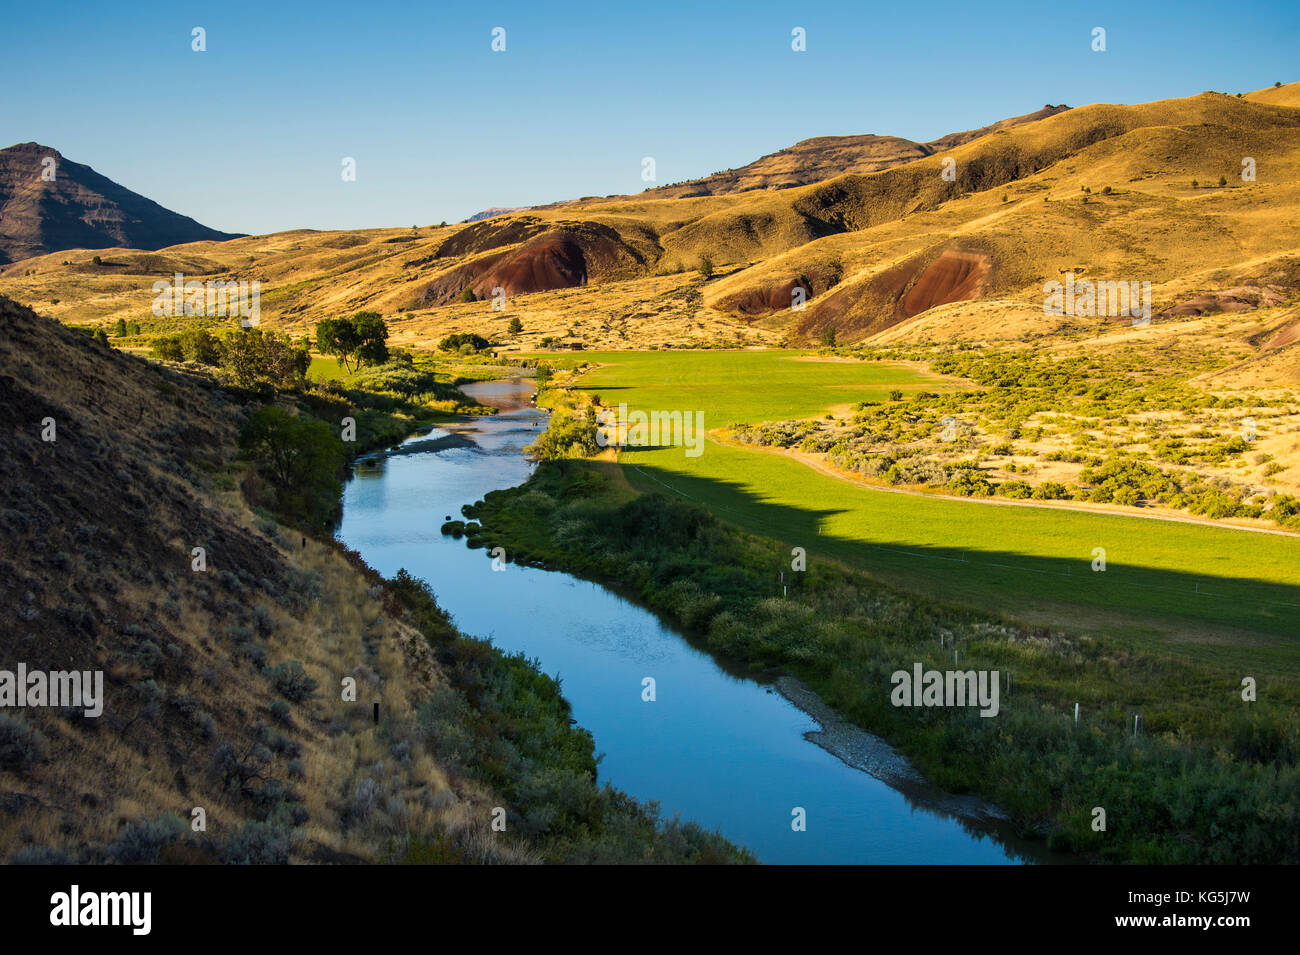 Mighty John Day river flwoing through the sheep rock unit in the John Day fossil beds National Monument, Oregon, - Stock Image